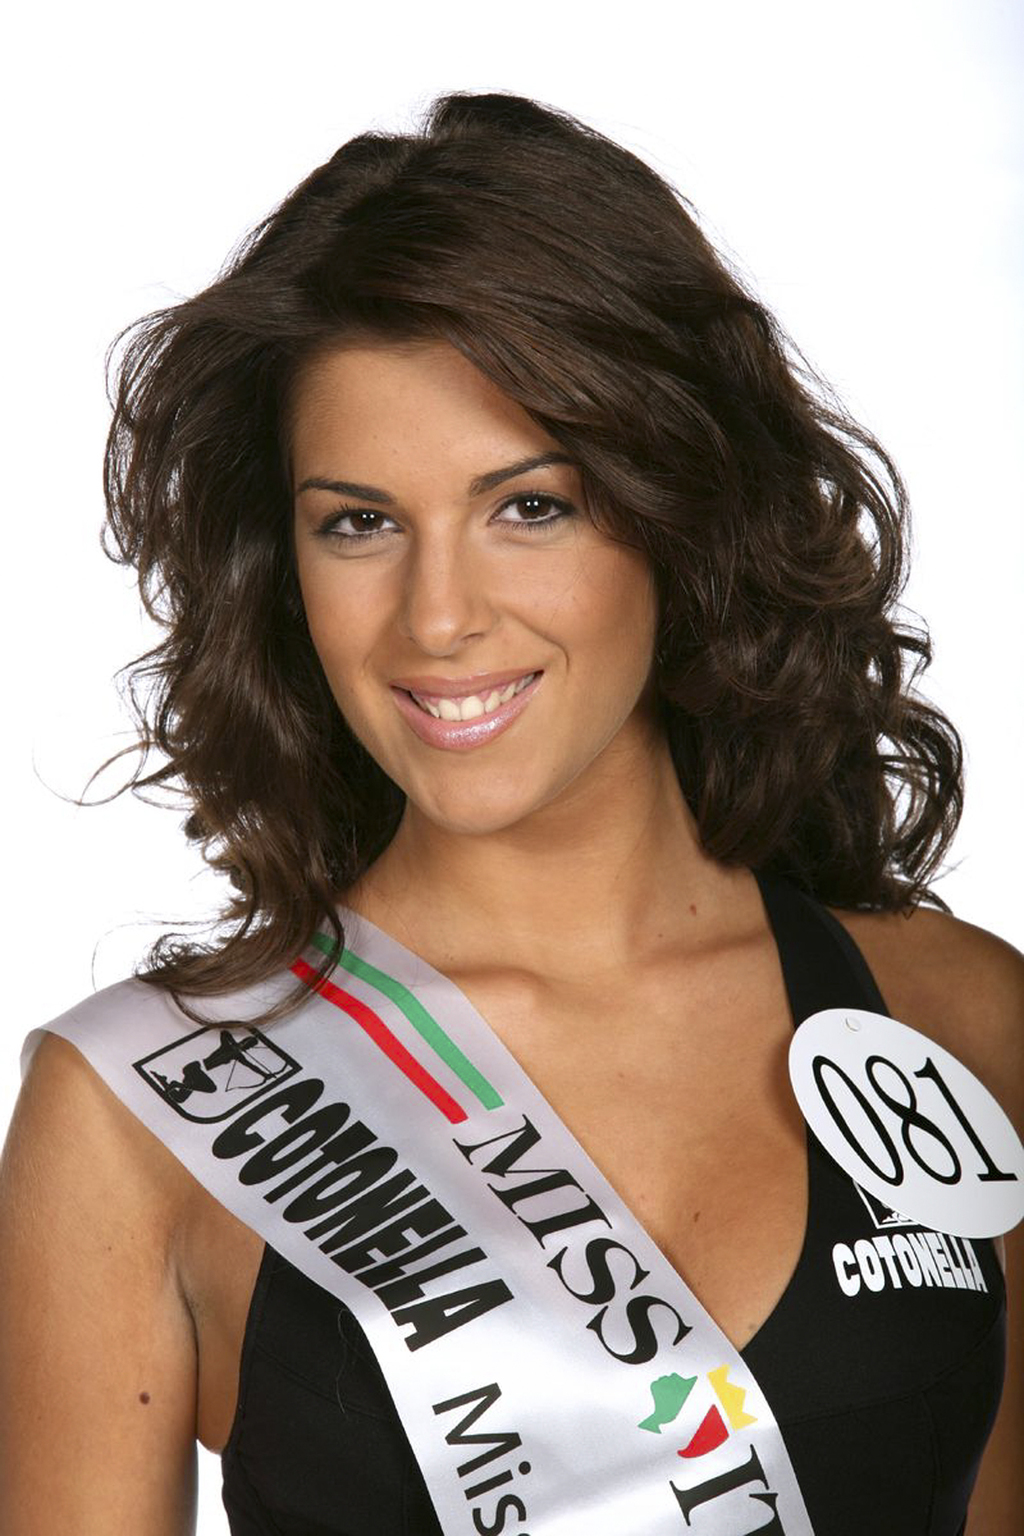 The Italian beauty queen, which the former doused with acid, first showed face